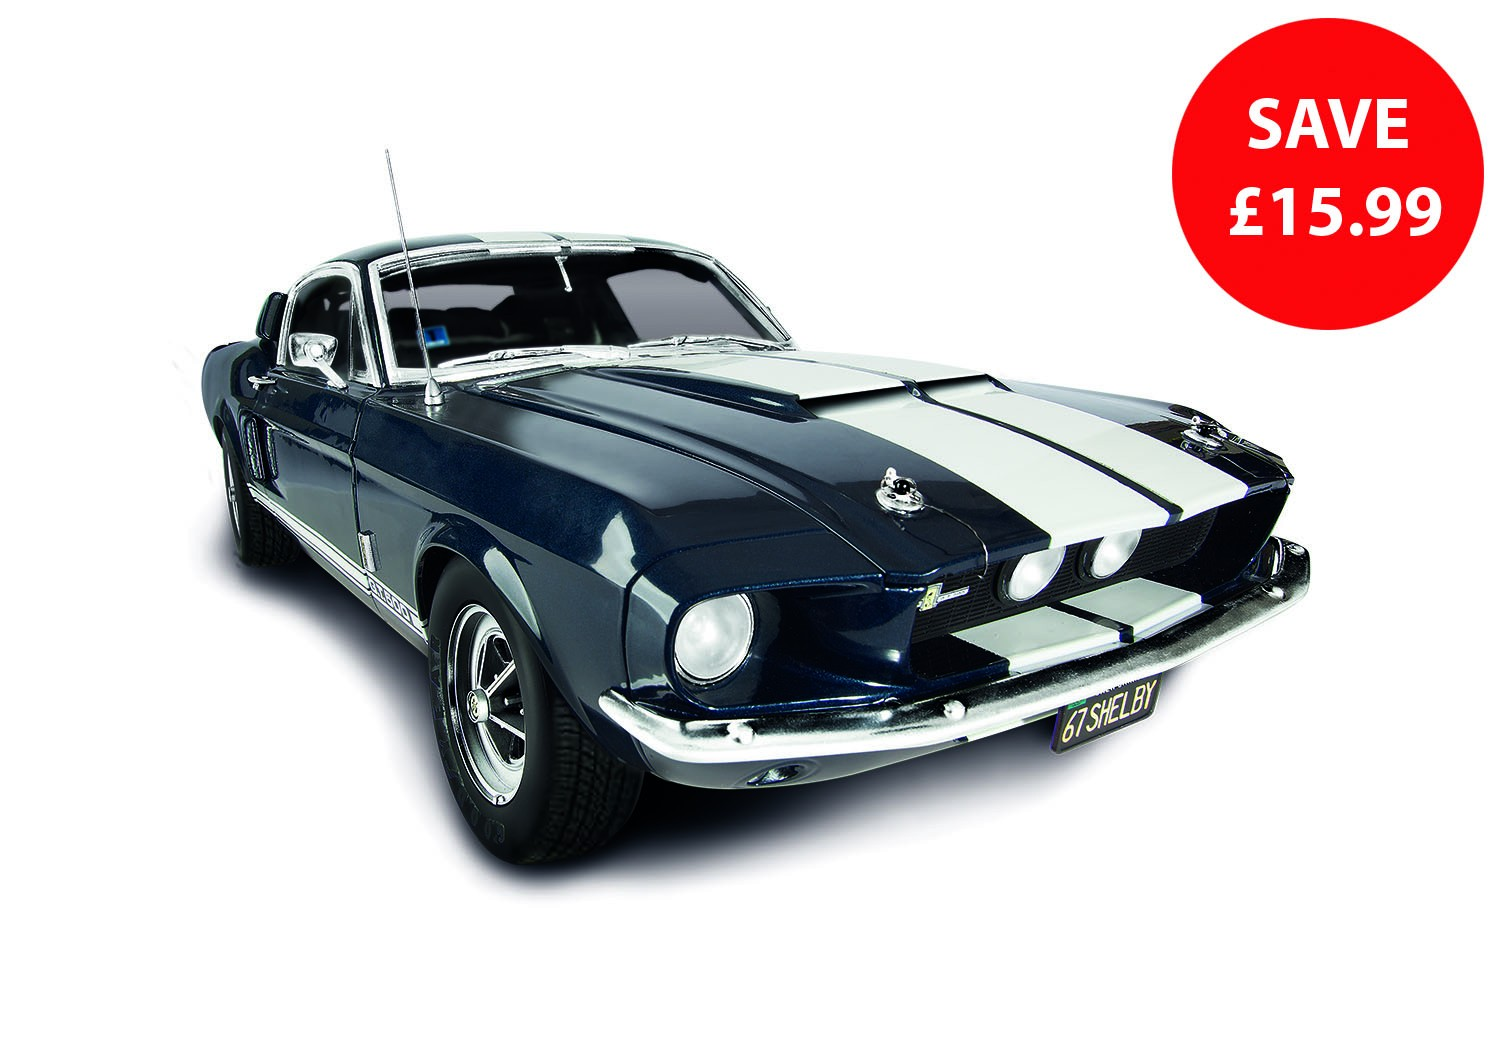 Ford Shelby Mustang De Agostini Modelspace Model Car Kit